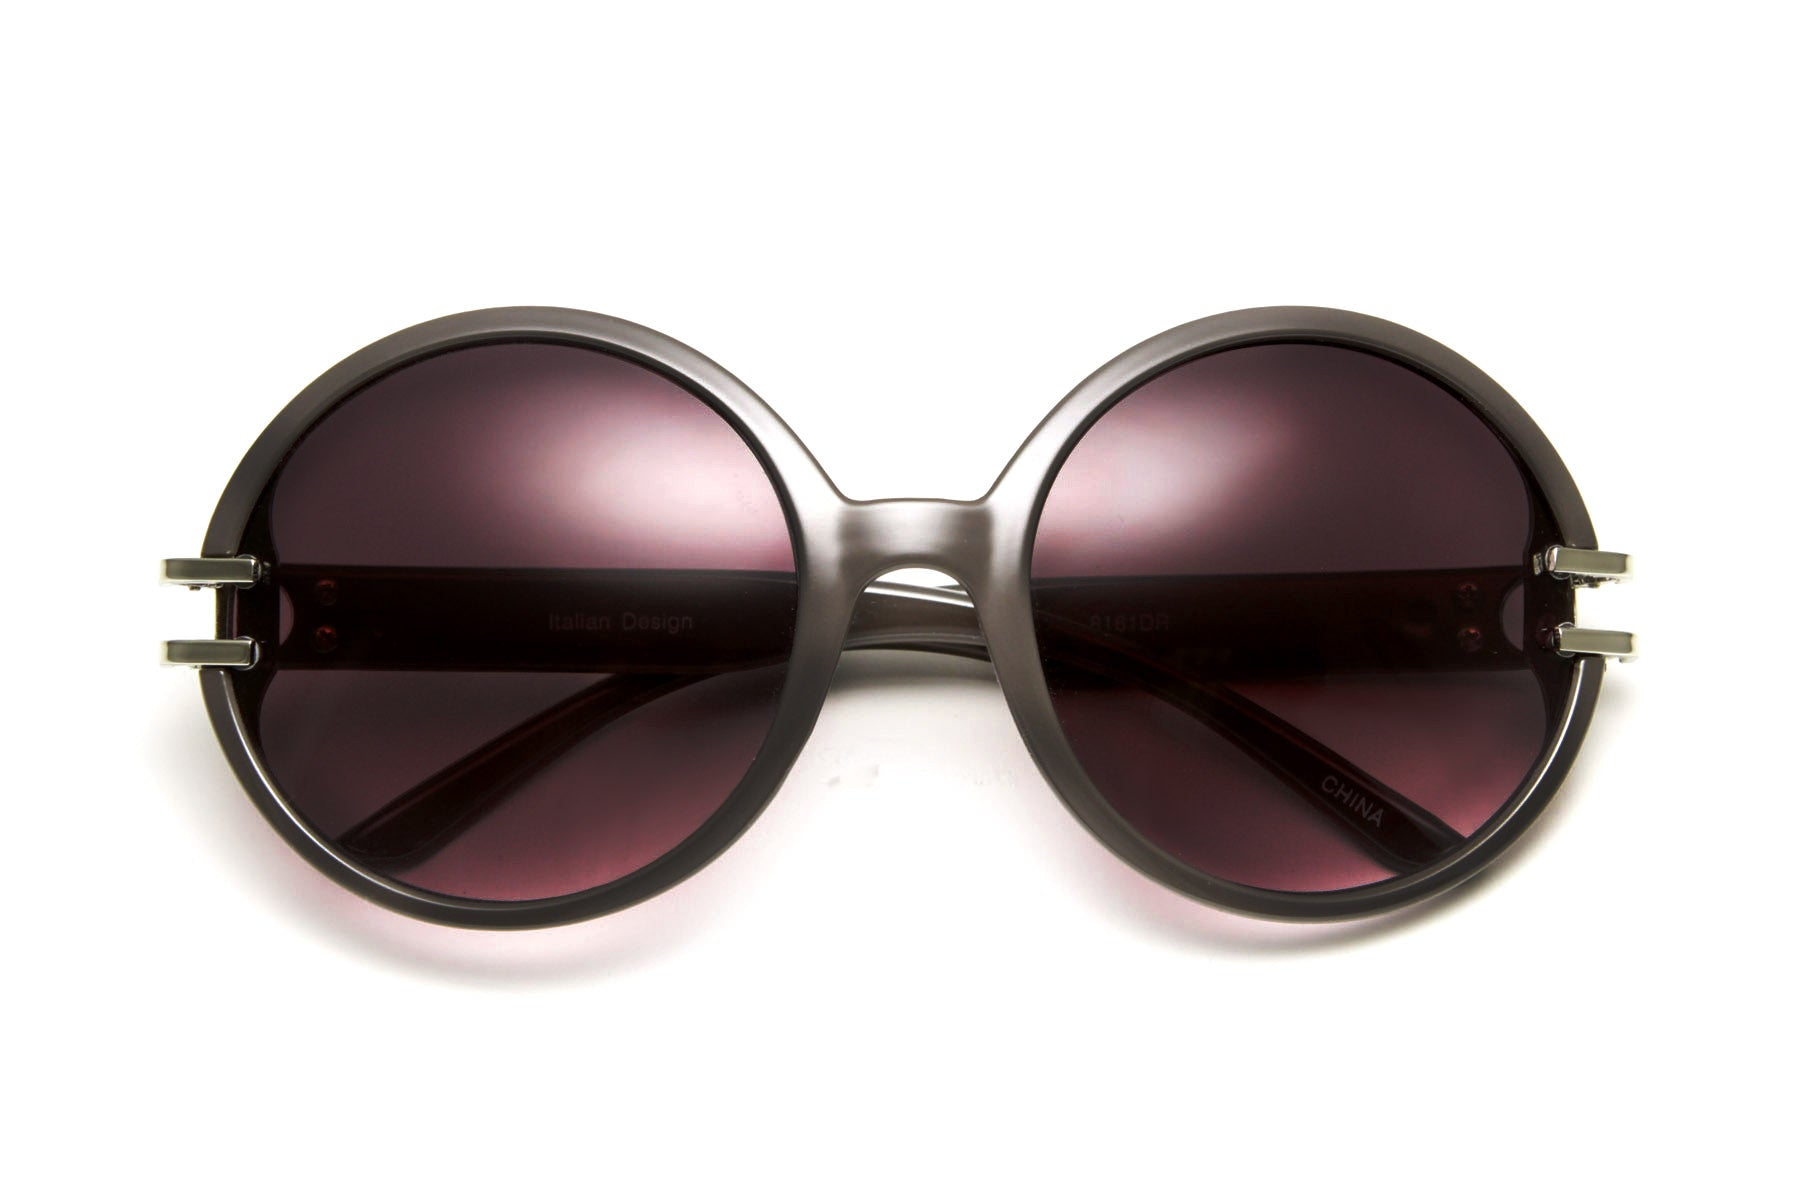 Burlesque Round Chic Vintage Sunglasses